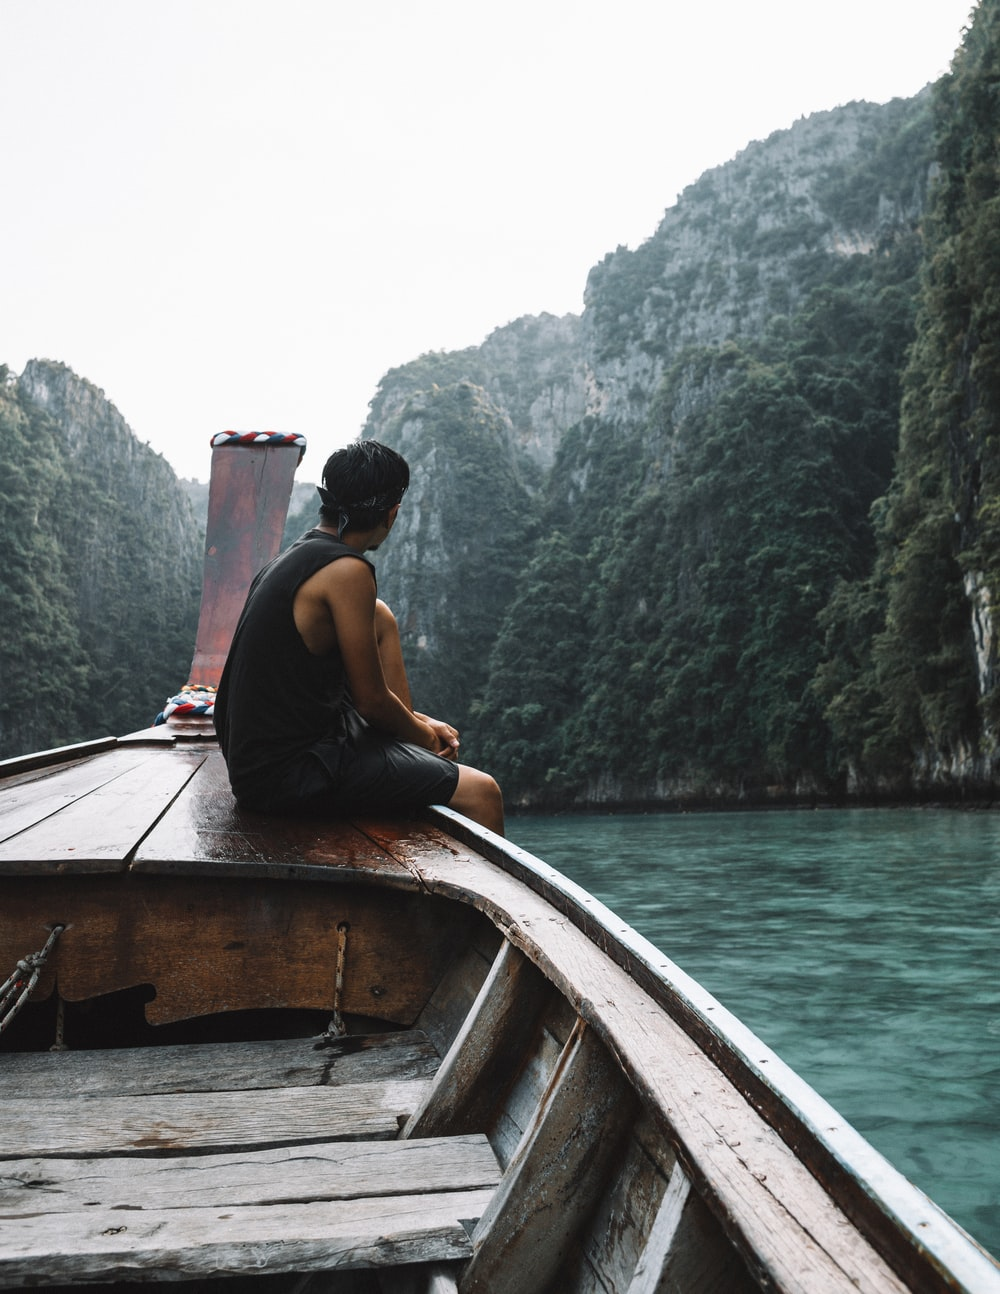 man sitting on brown wooden boat in body of water during daytime